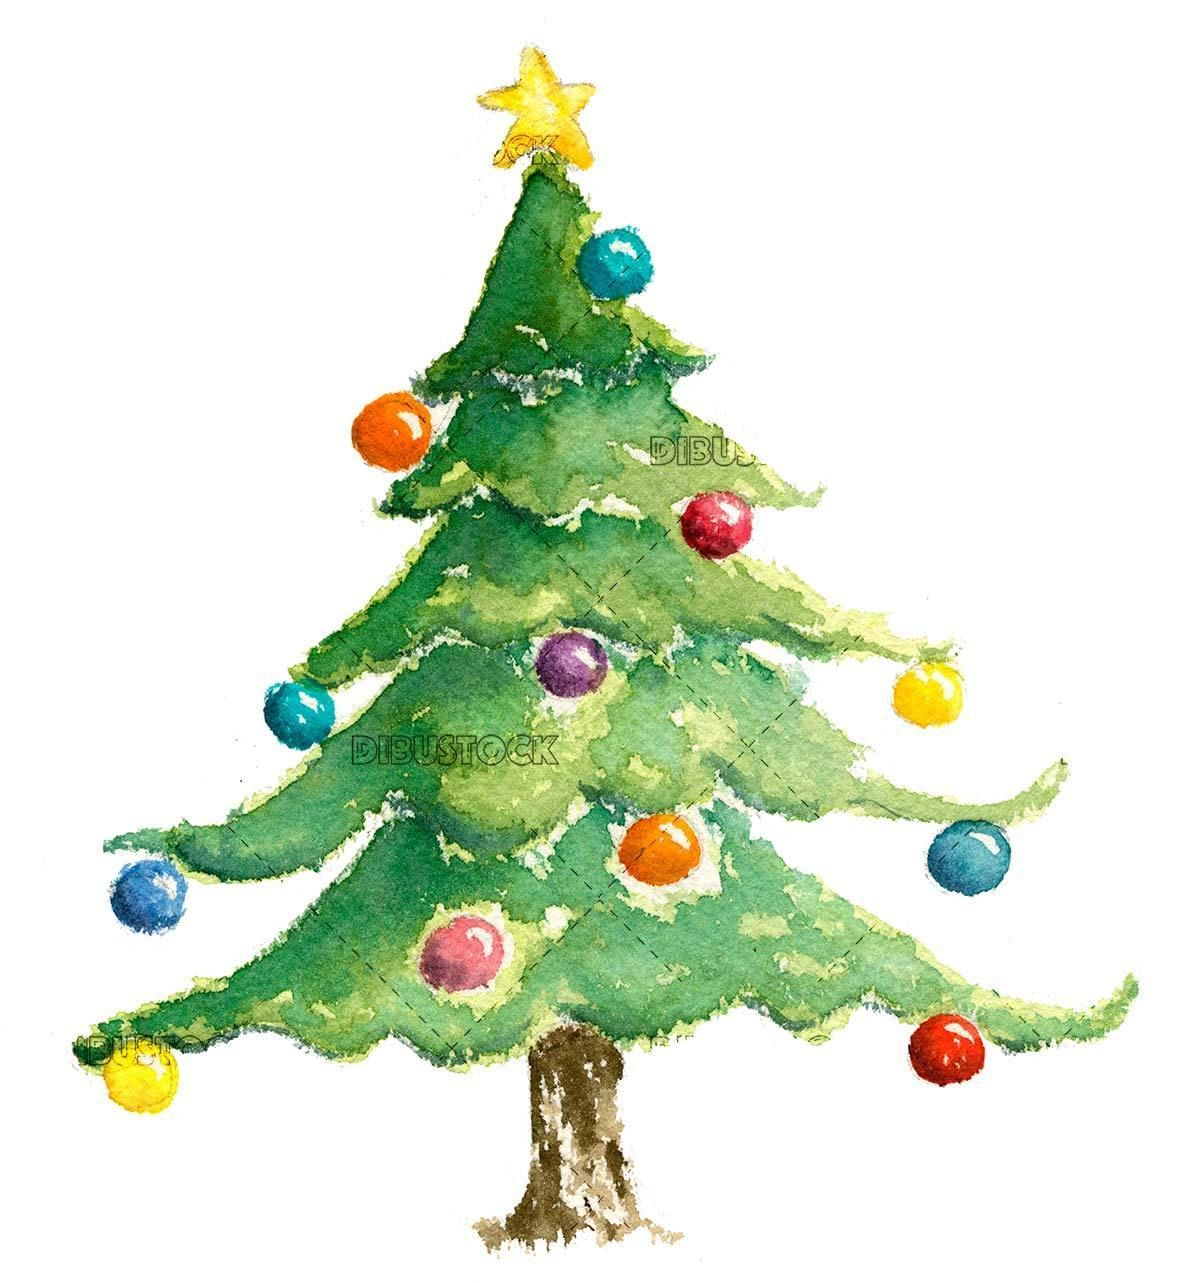 Christmas Tree In Watercolor Christmas Tree Drawing Christmas Art Christmas